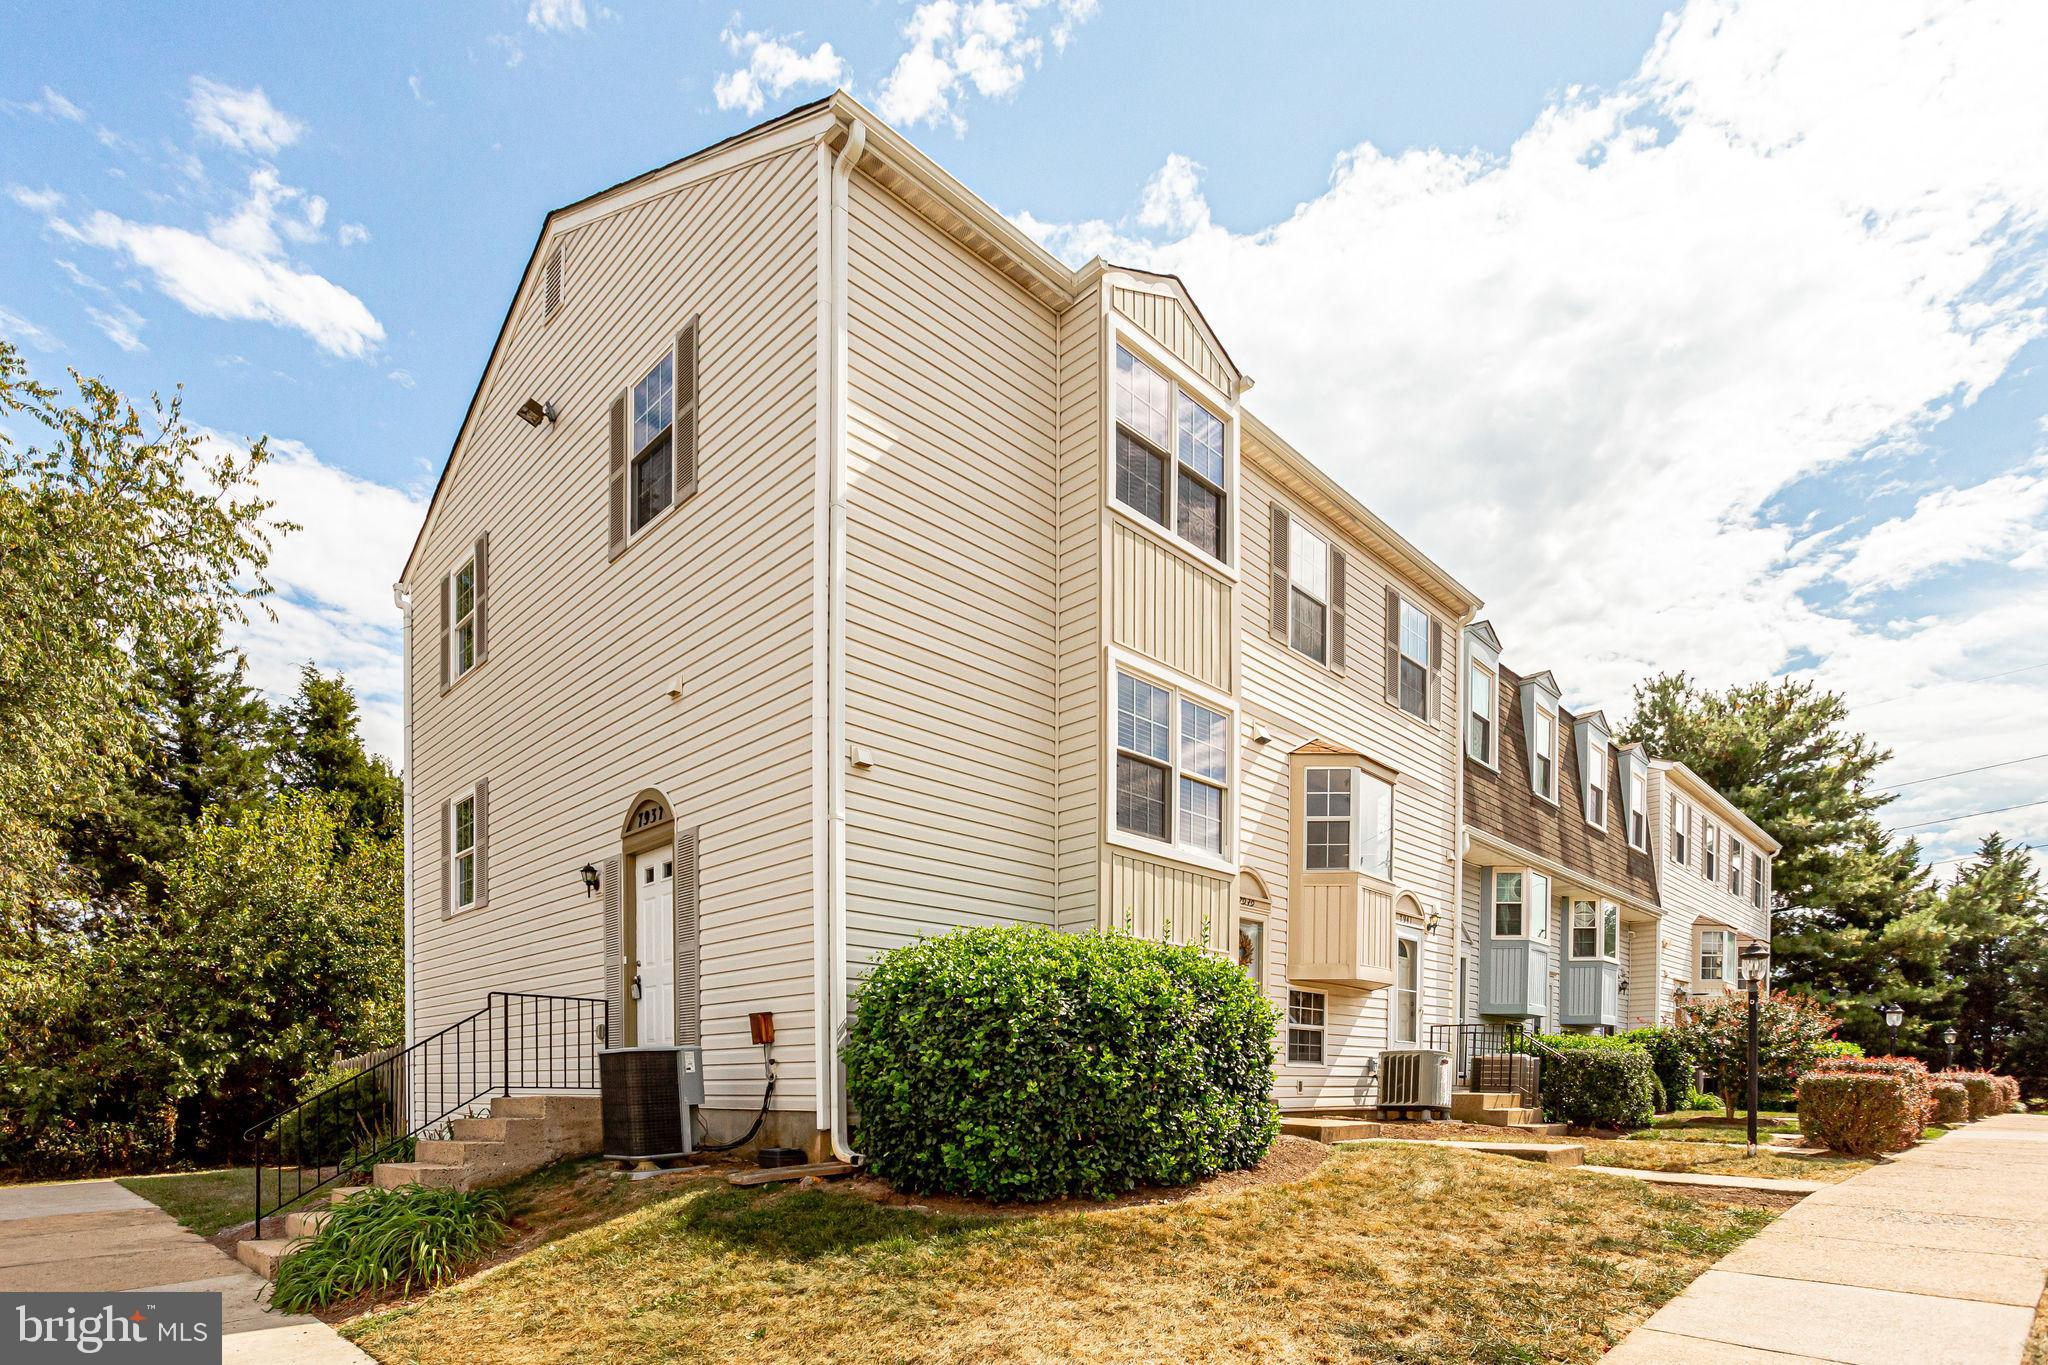 A must-see 3 bedroom end-unit 3 level town home, move-in ready. Just renovated throughout 3 levels,